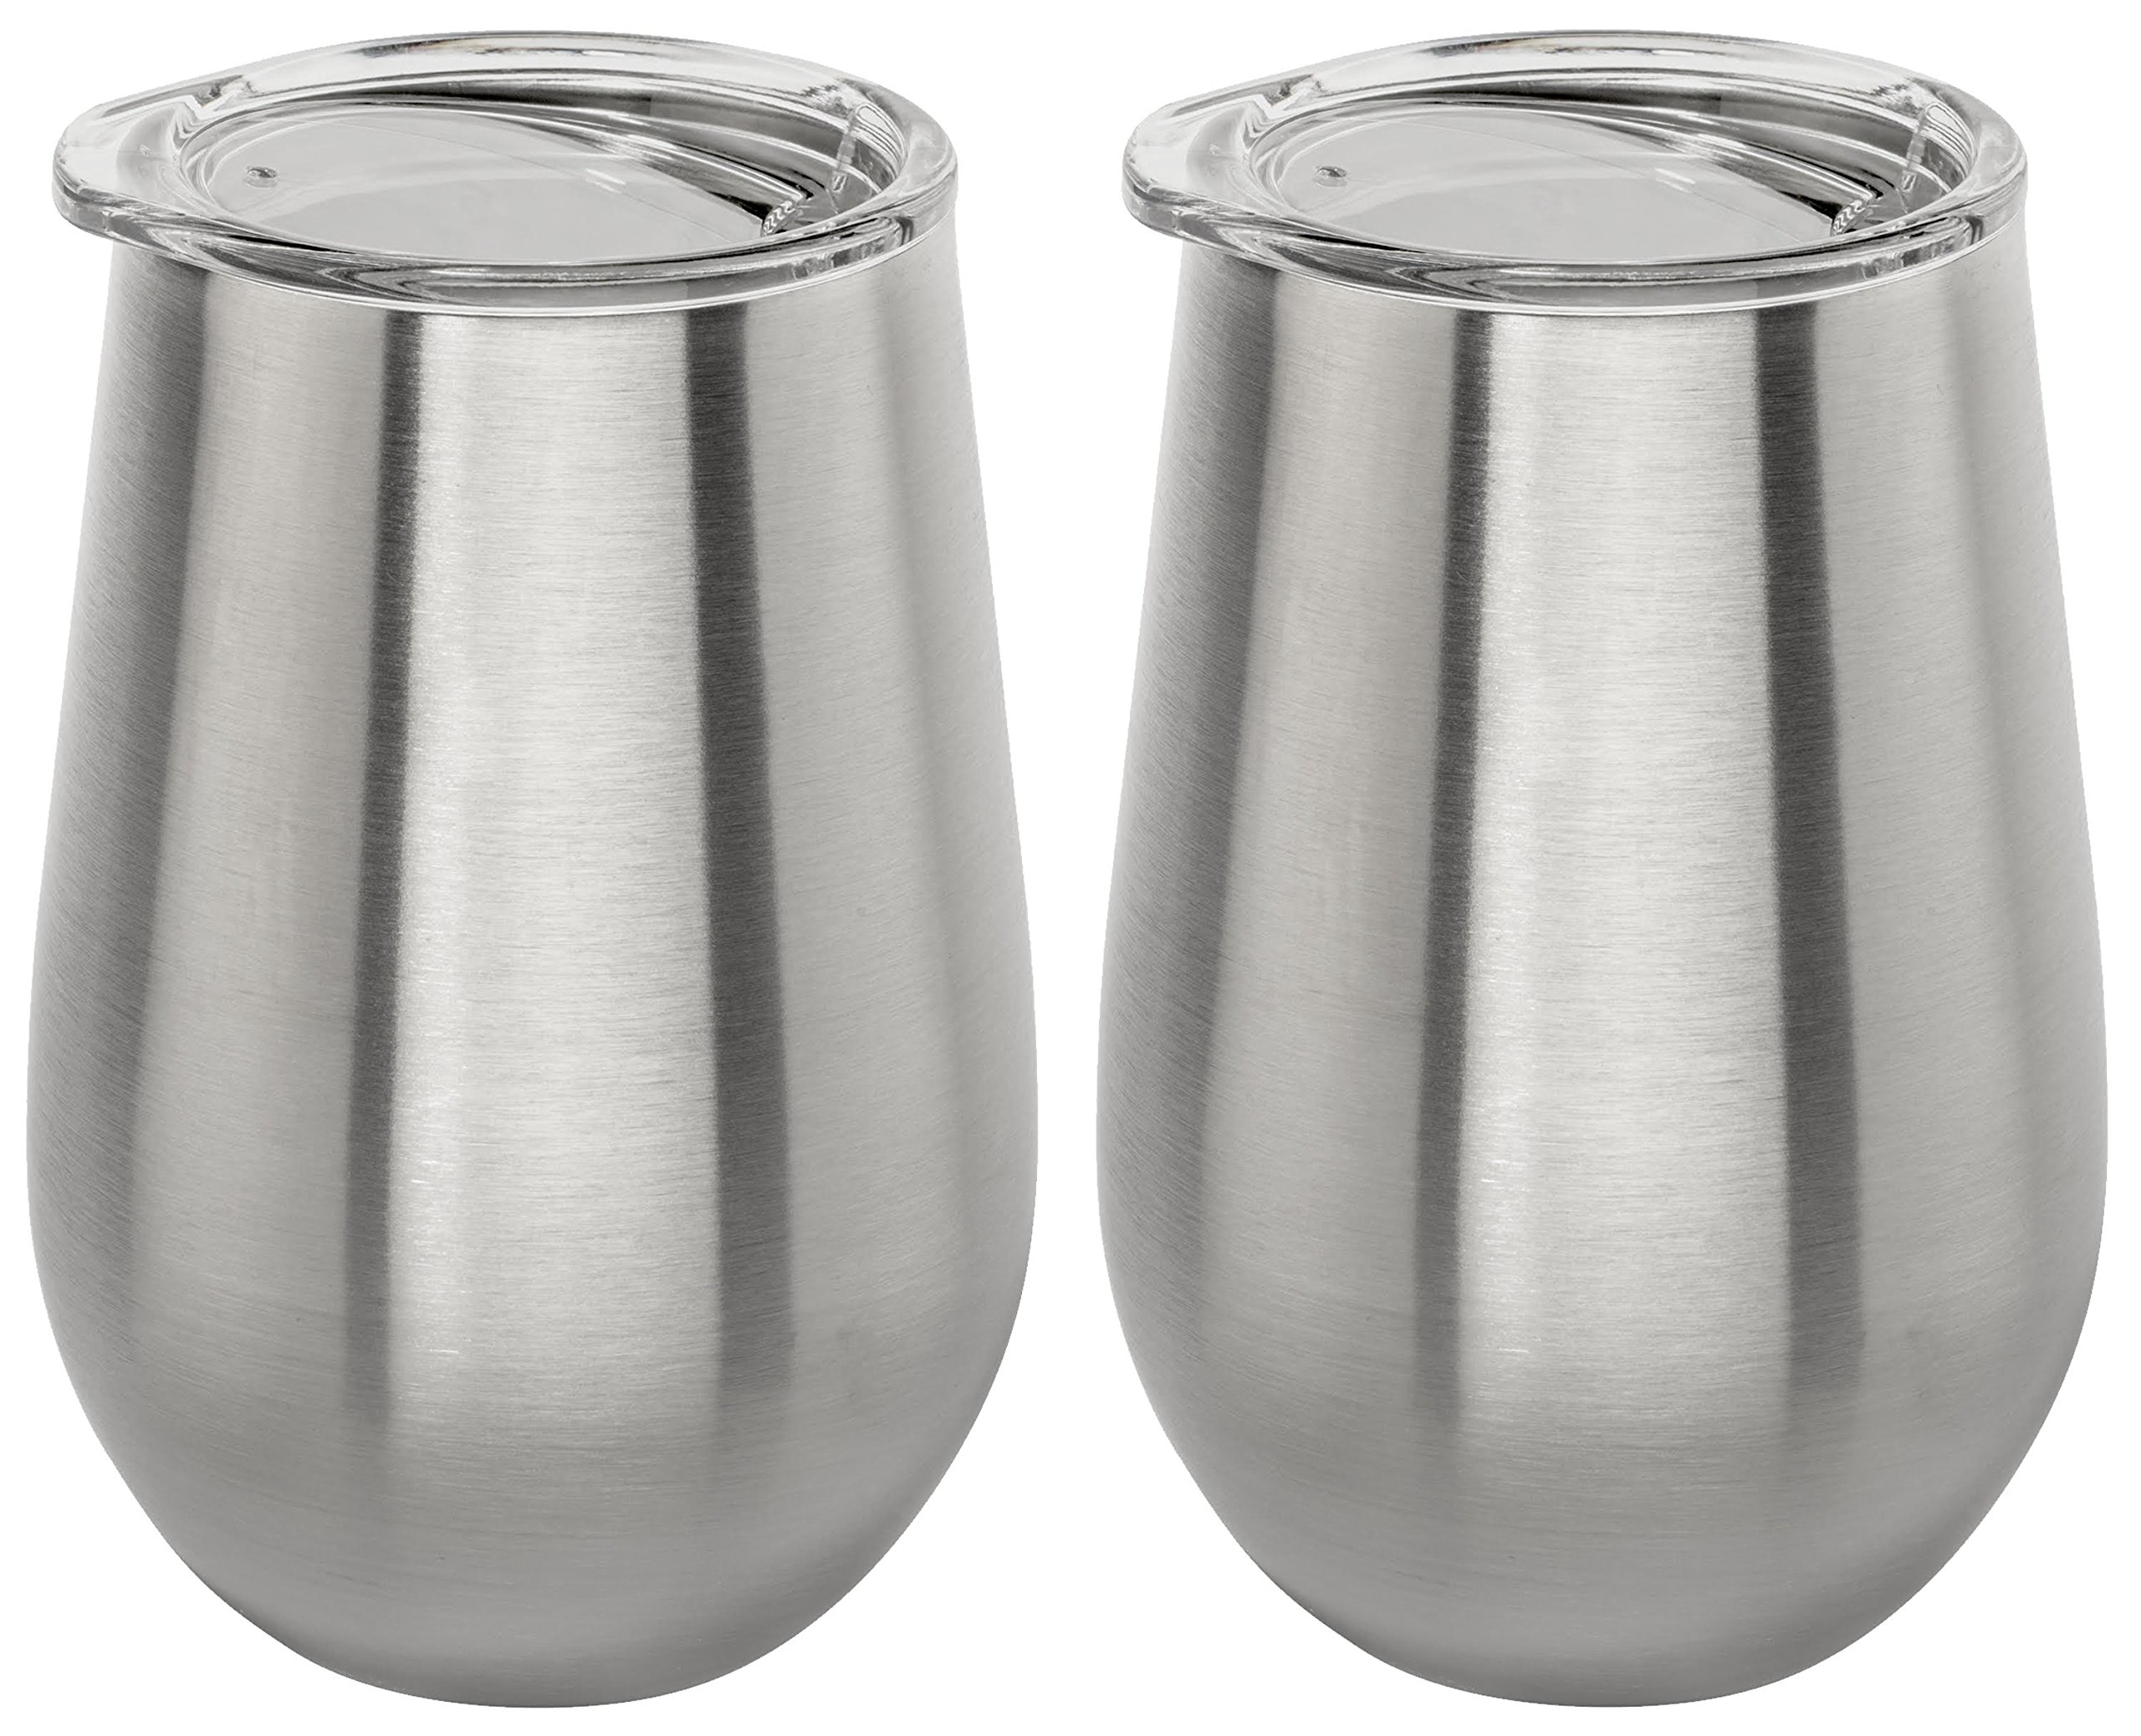 Stainless Vacuum Insulated Wine Tumbler with Lid - 12oz Wine Glass by Lancaster Steel (2)